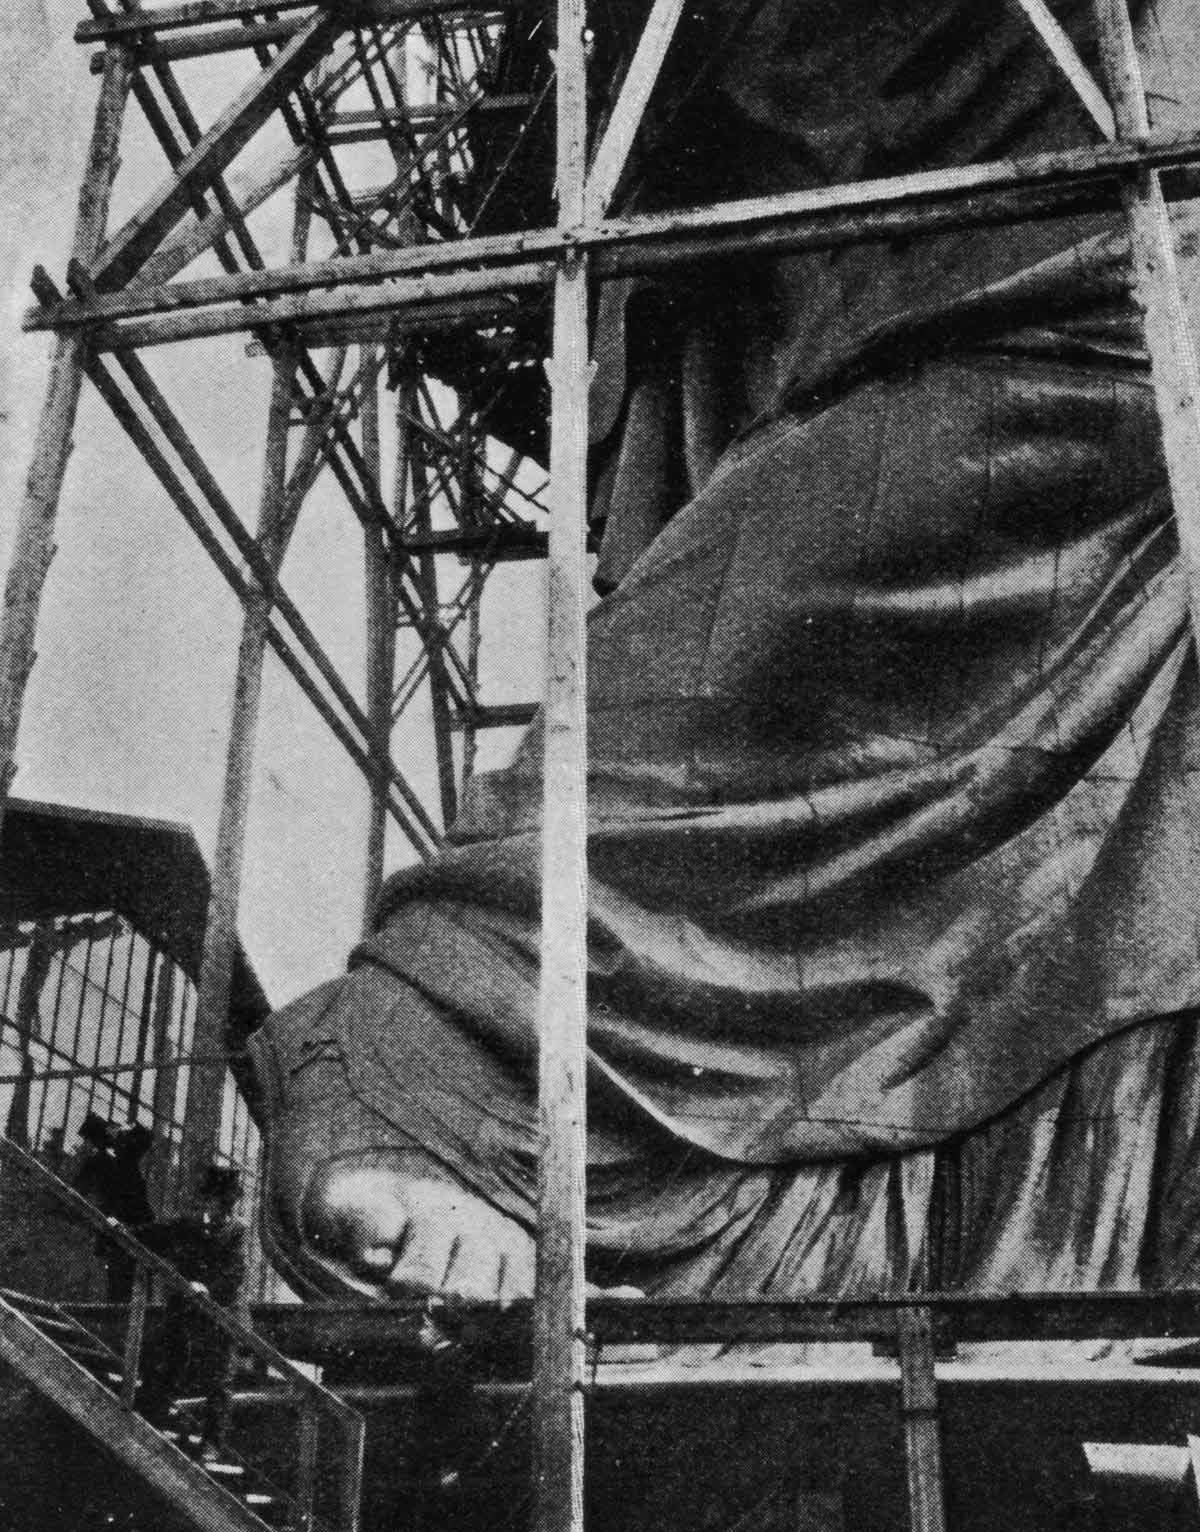 Tourists take a peek at Lady Liberty's massive foot as she is built in Paris before embarking on her long journey to the United States.